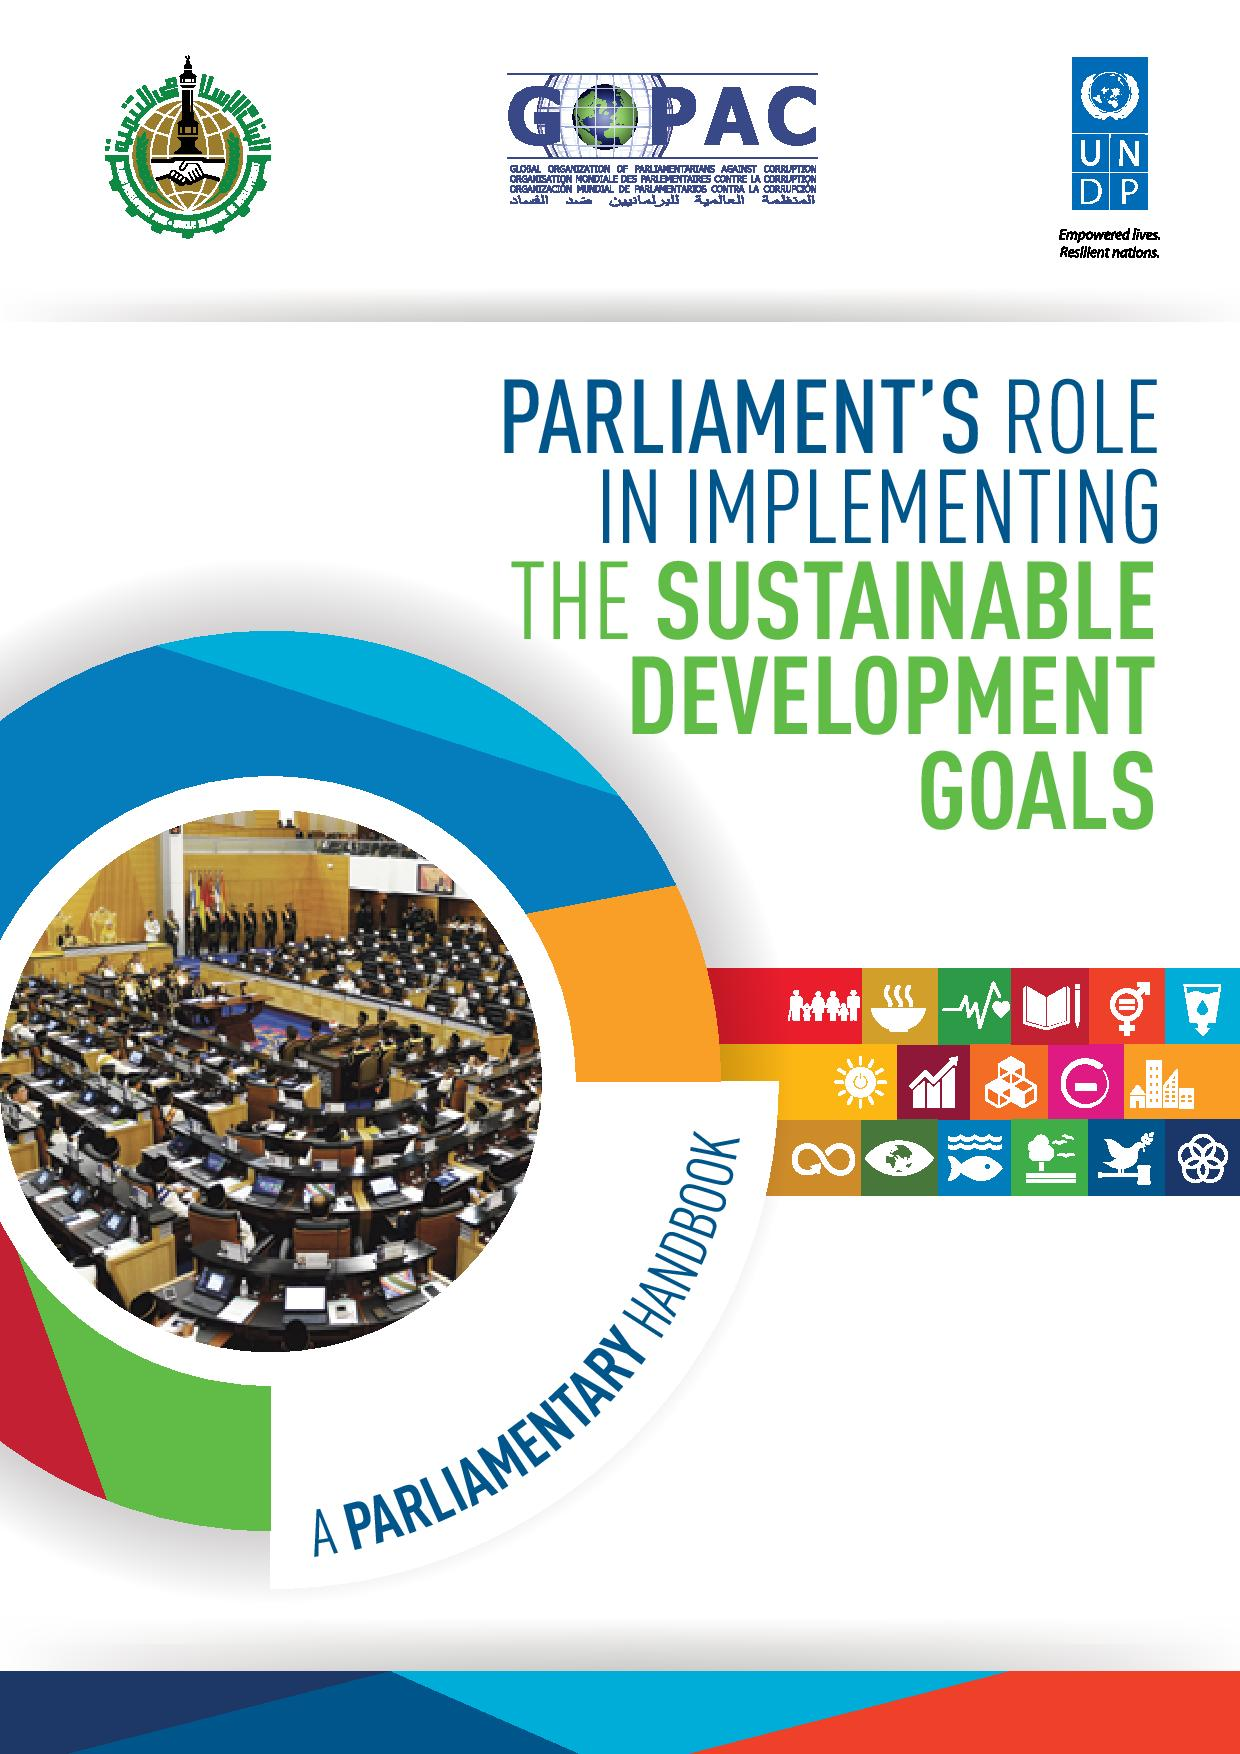 Parliament's role in implementing the sustainable development goals